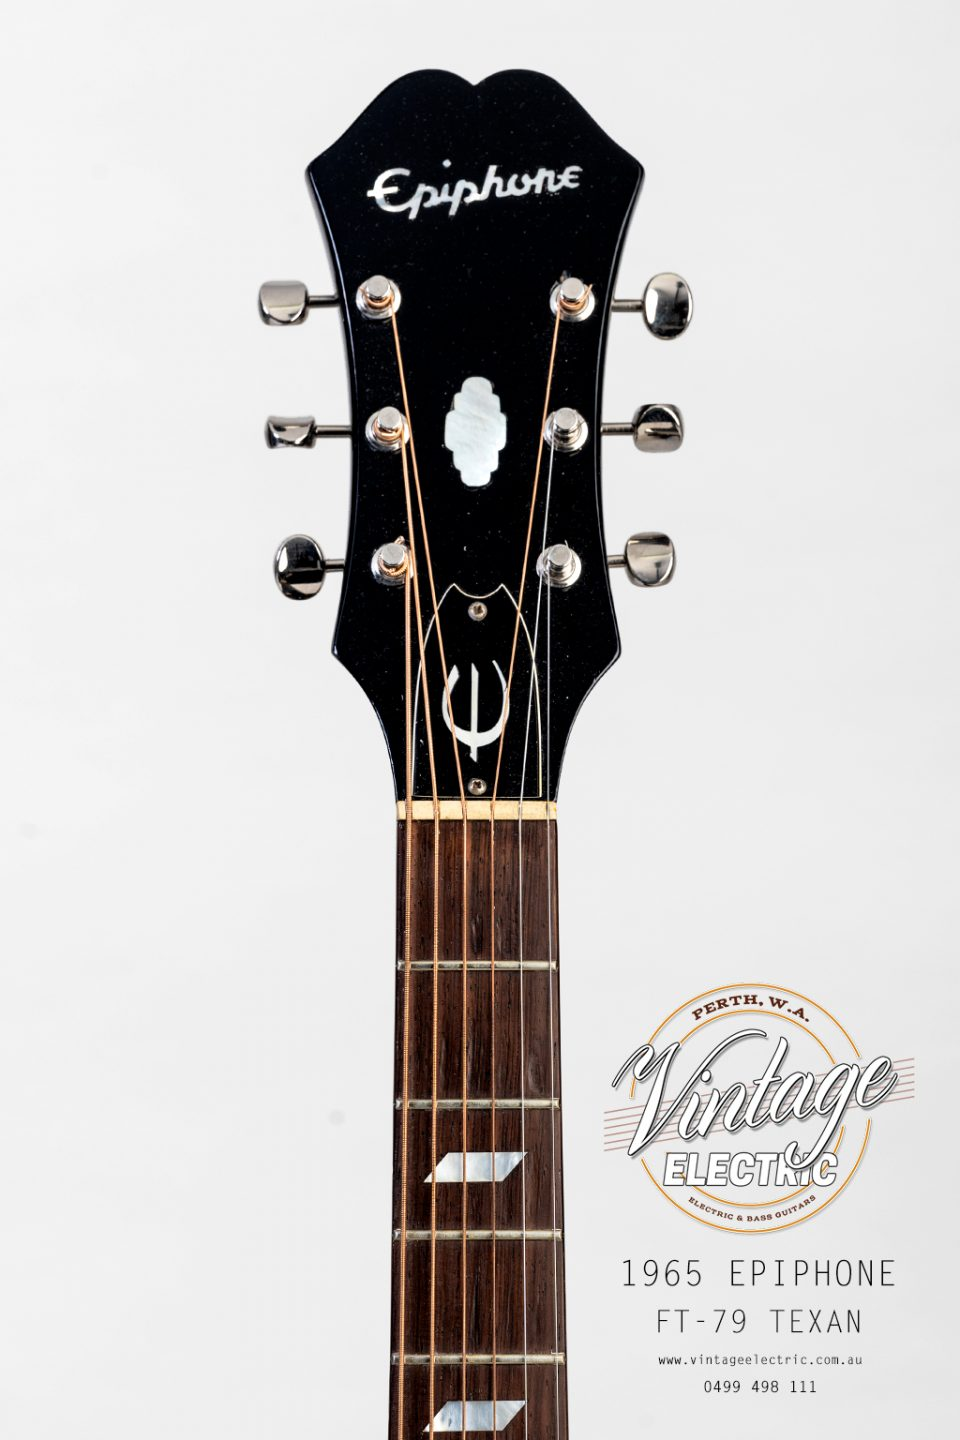 1965 Epiphone Texan FT79 USA Headstock